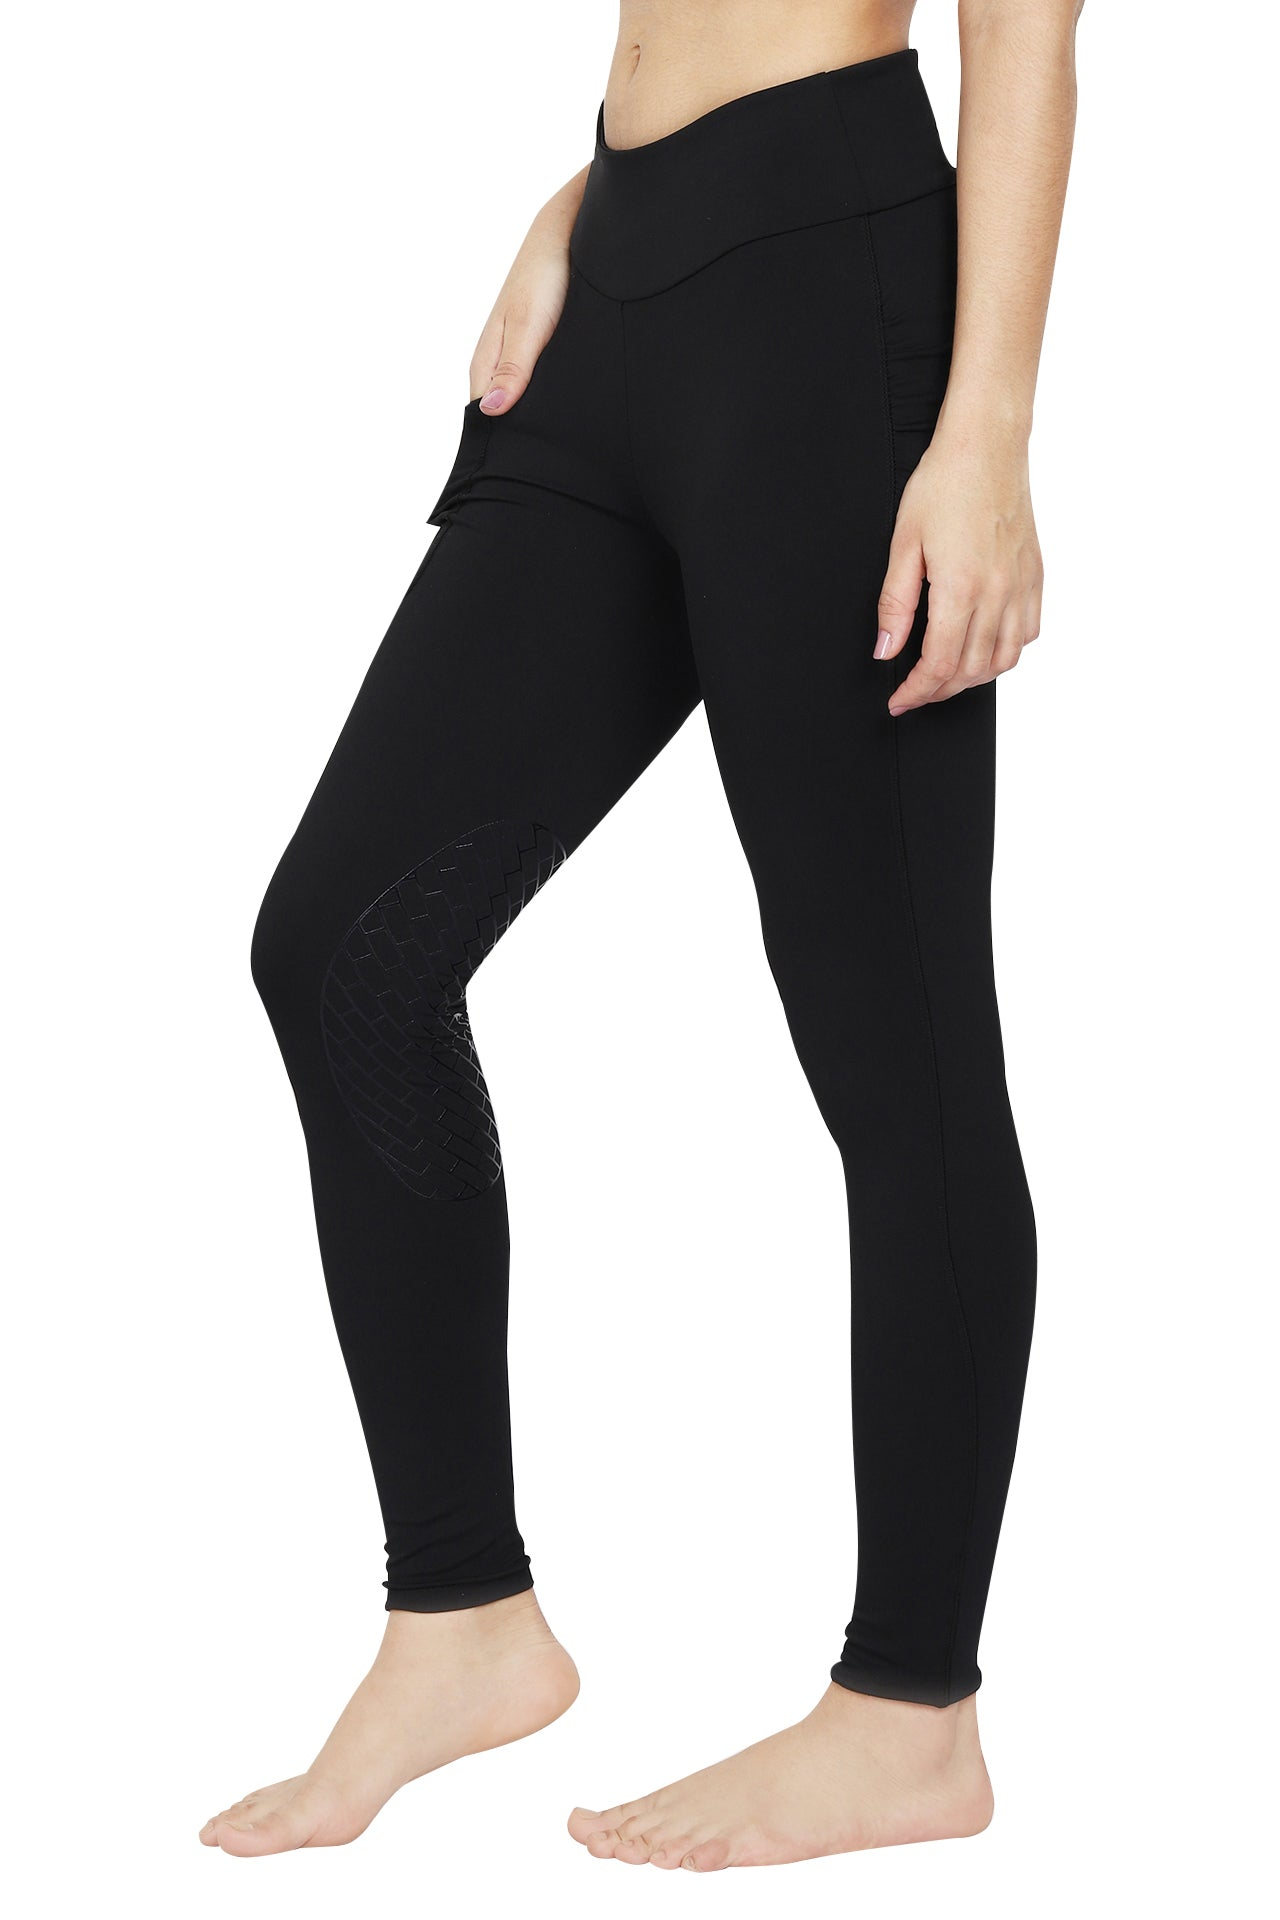 TuffRider Ladies Bootie Tights w/ Pocket_1